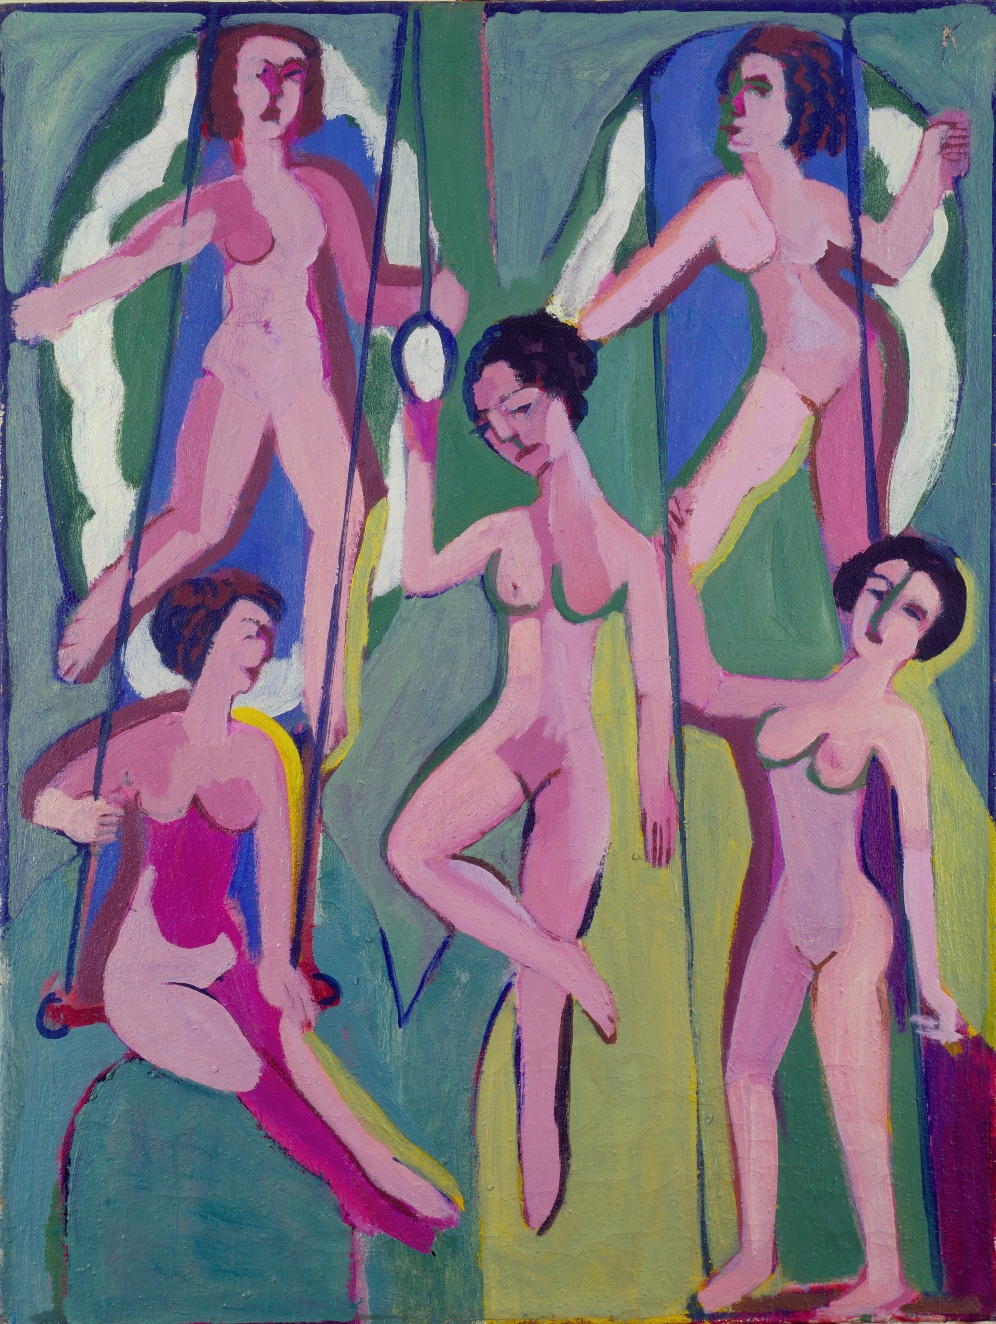 Artisten an Ringen (und Trapez) (Artists on Rings (and on Trapeze)) by Ernst Ludwig Kirchner